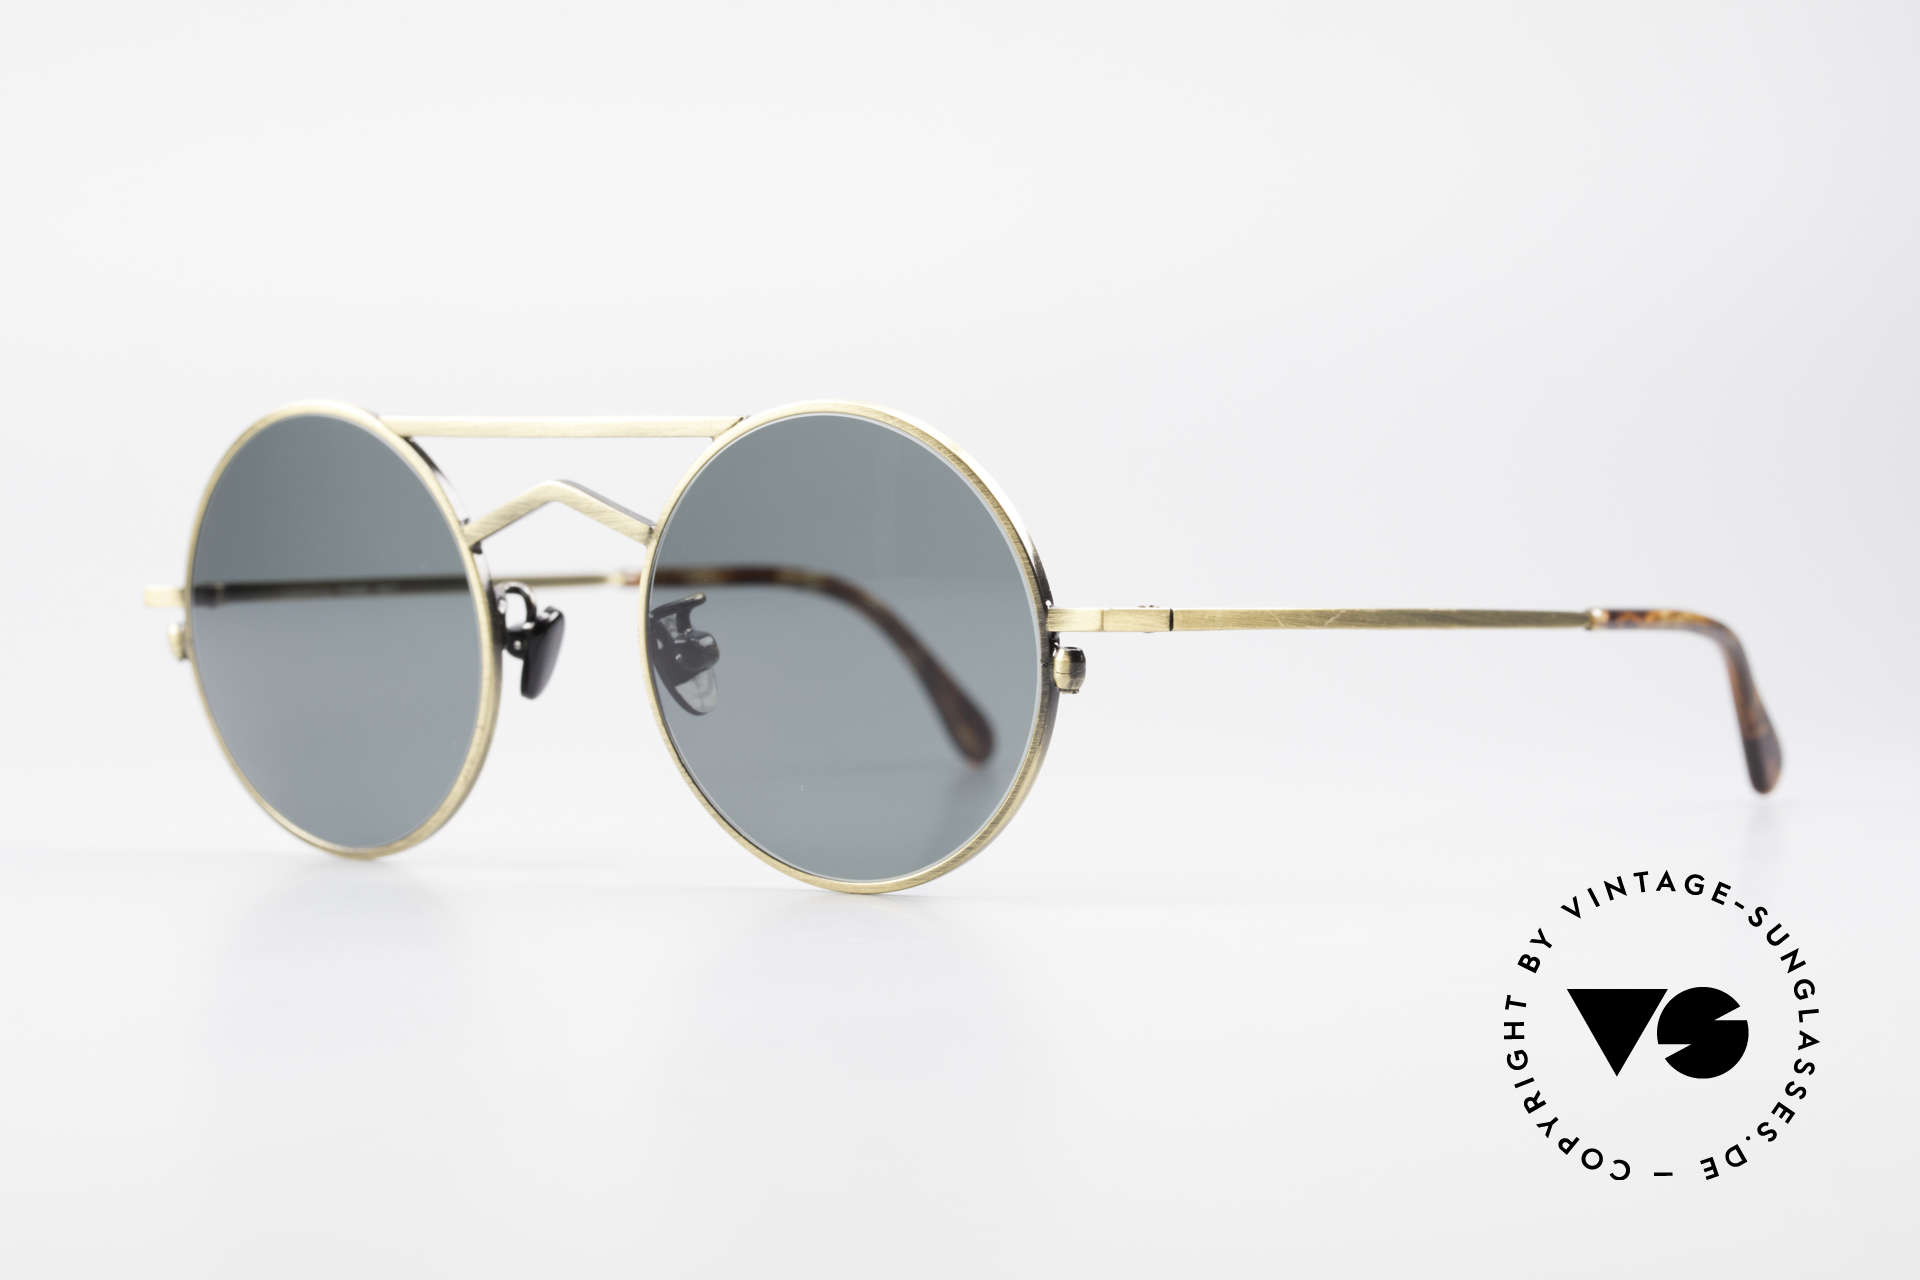 Gianni Versace 540 Small Round Designer Shades, classic round lens shape in extraordinary garment, Made for Men and Women